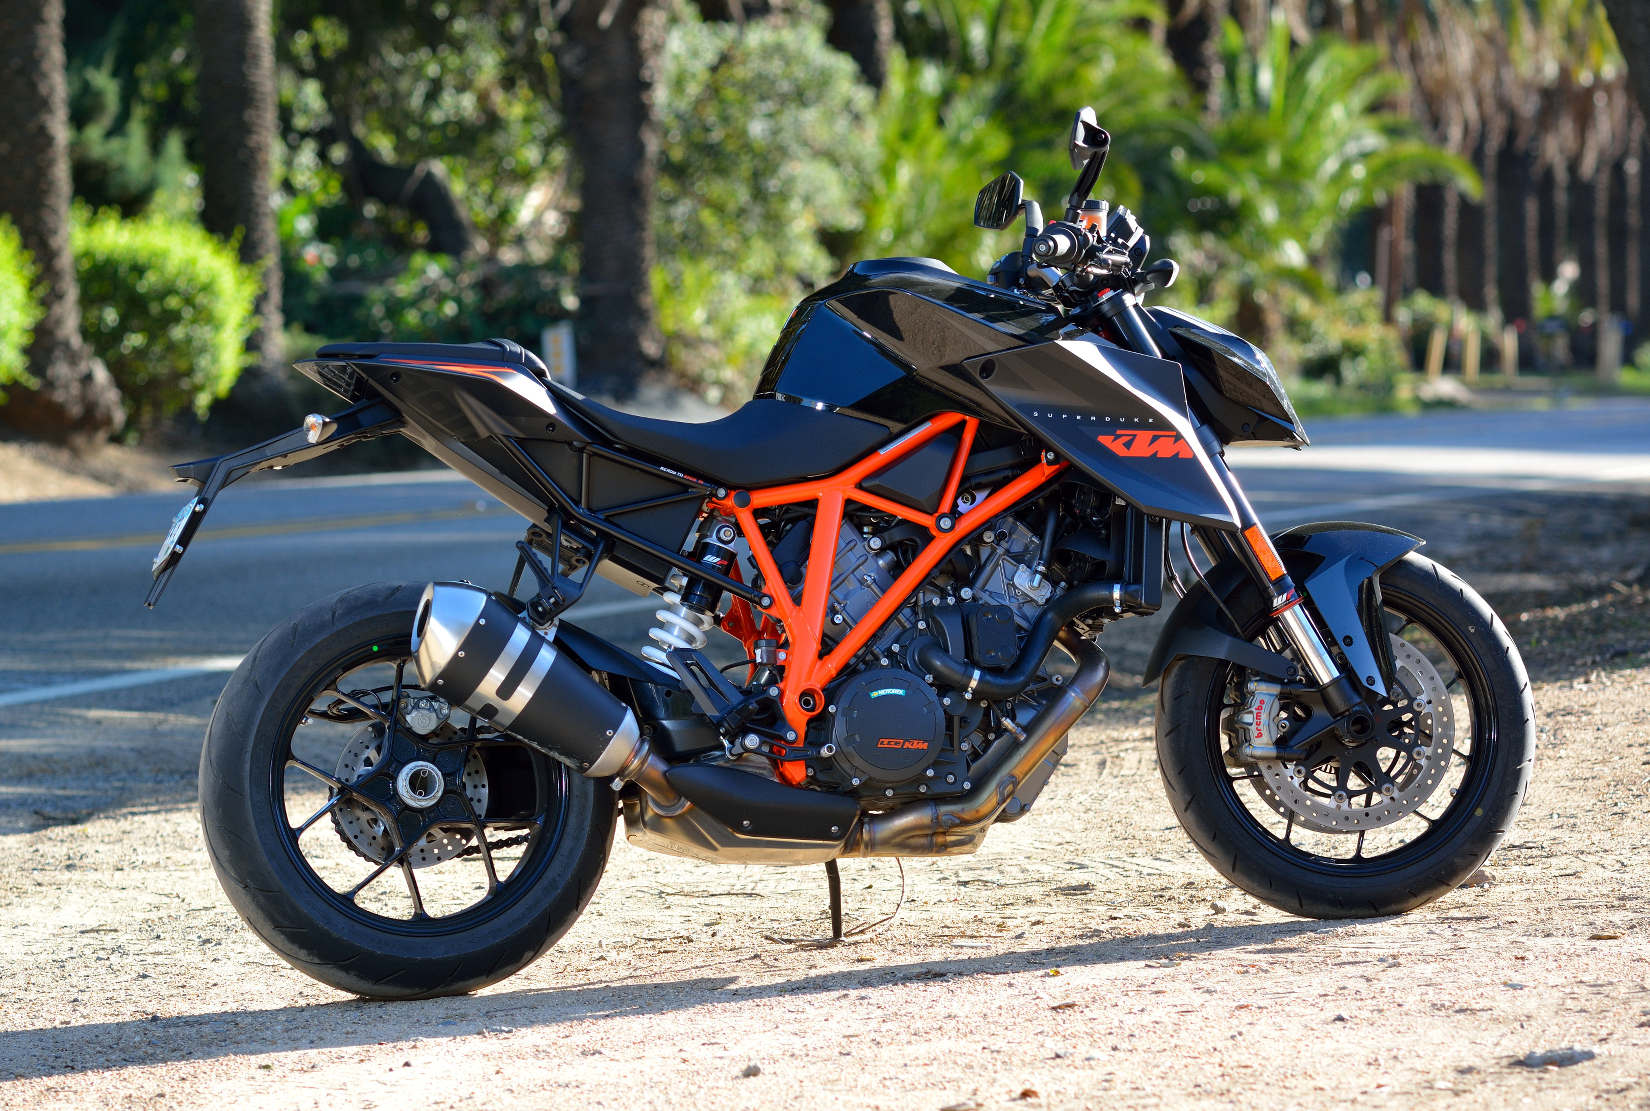 ktm 1290 super duke r md ride review part 2 motorcycle news. Black Bedroom Furniture Sets. Home Design Ideas